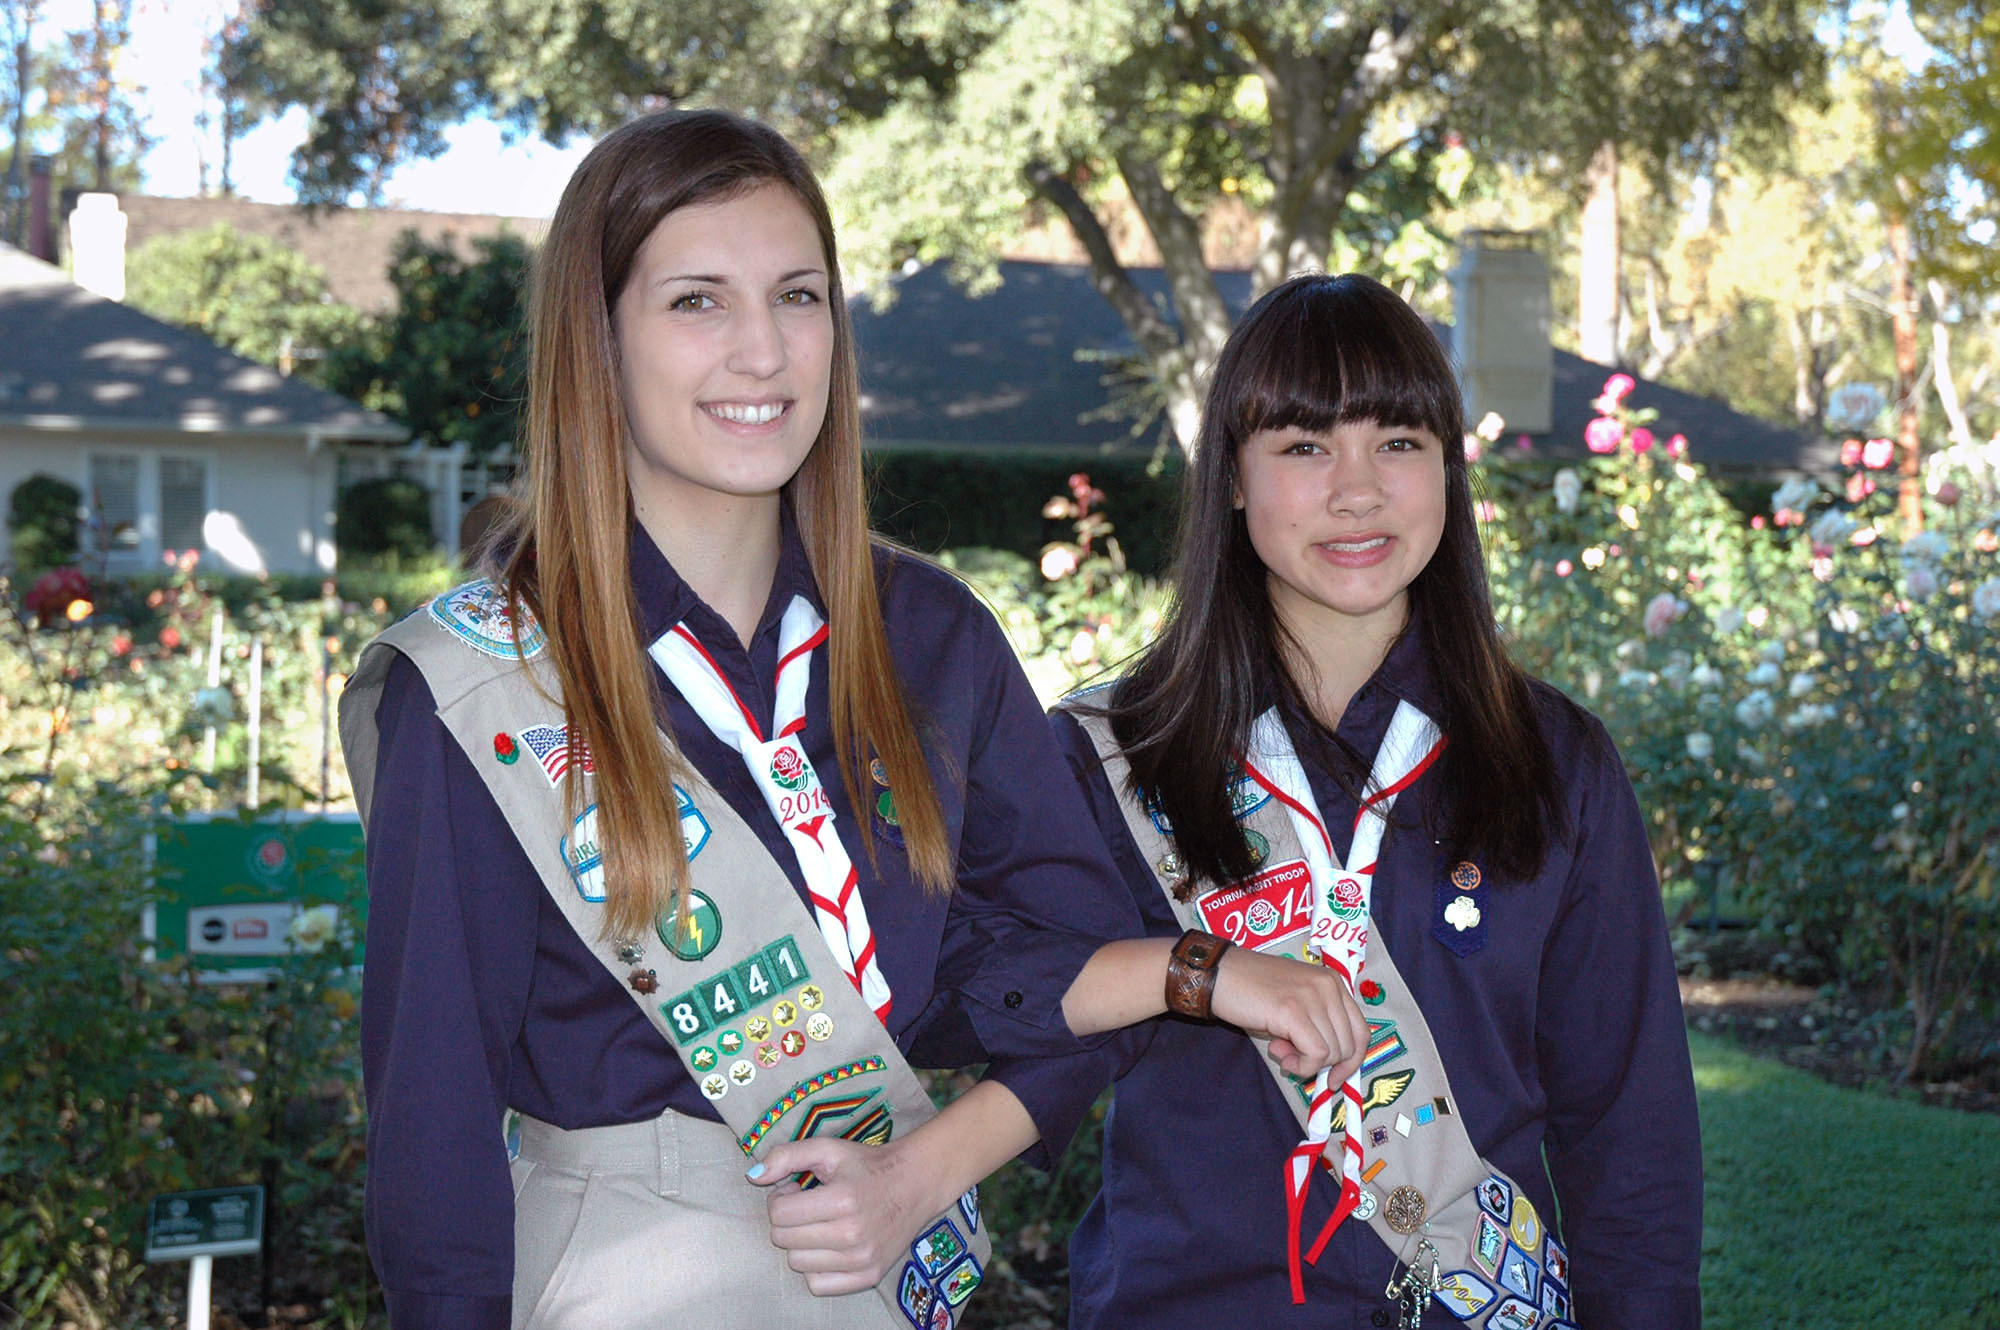 Community: Girl Scout to follow father's footsteps in parade